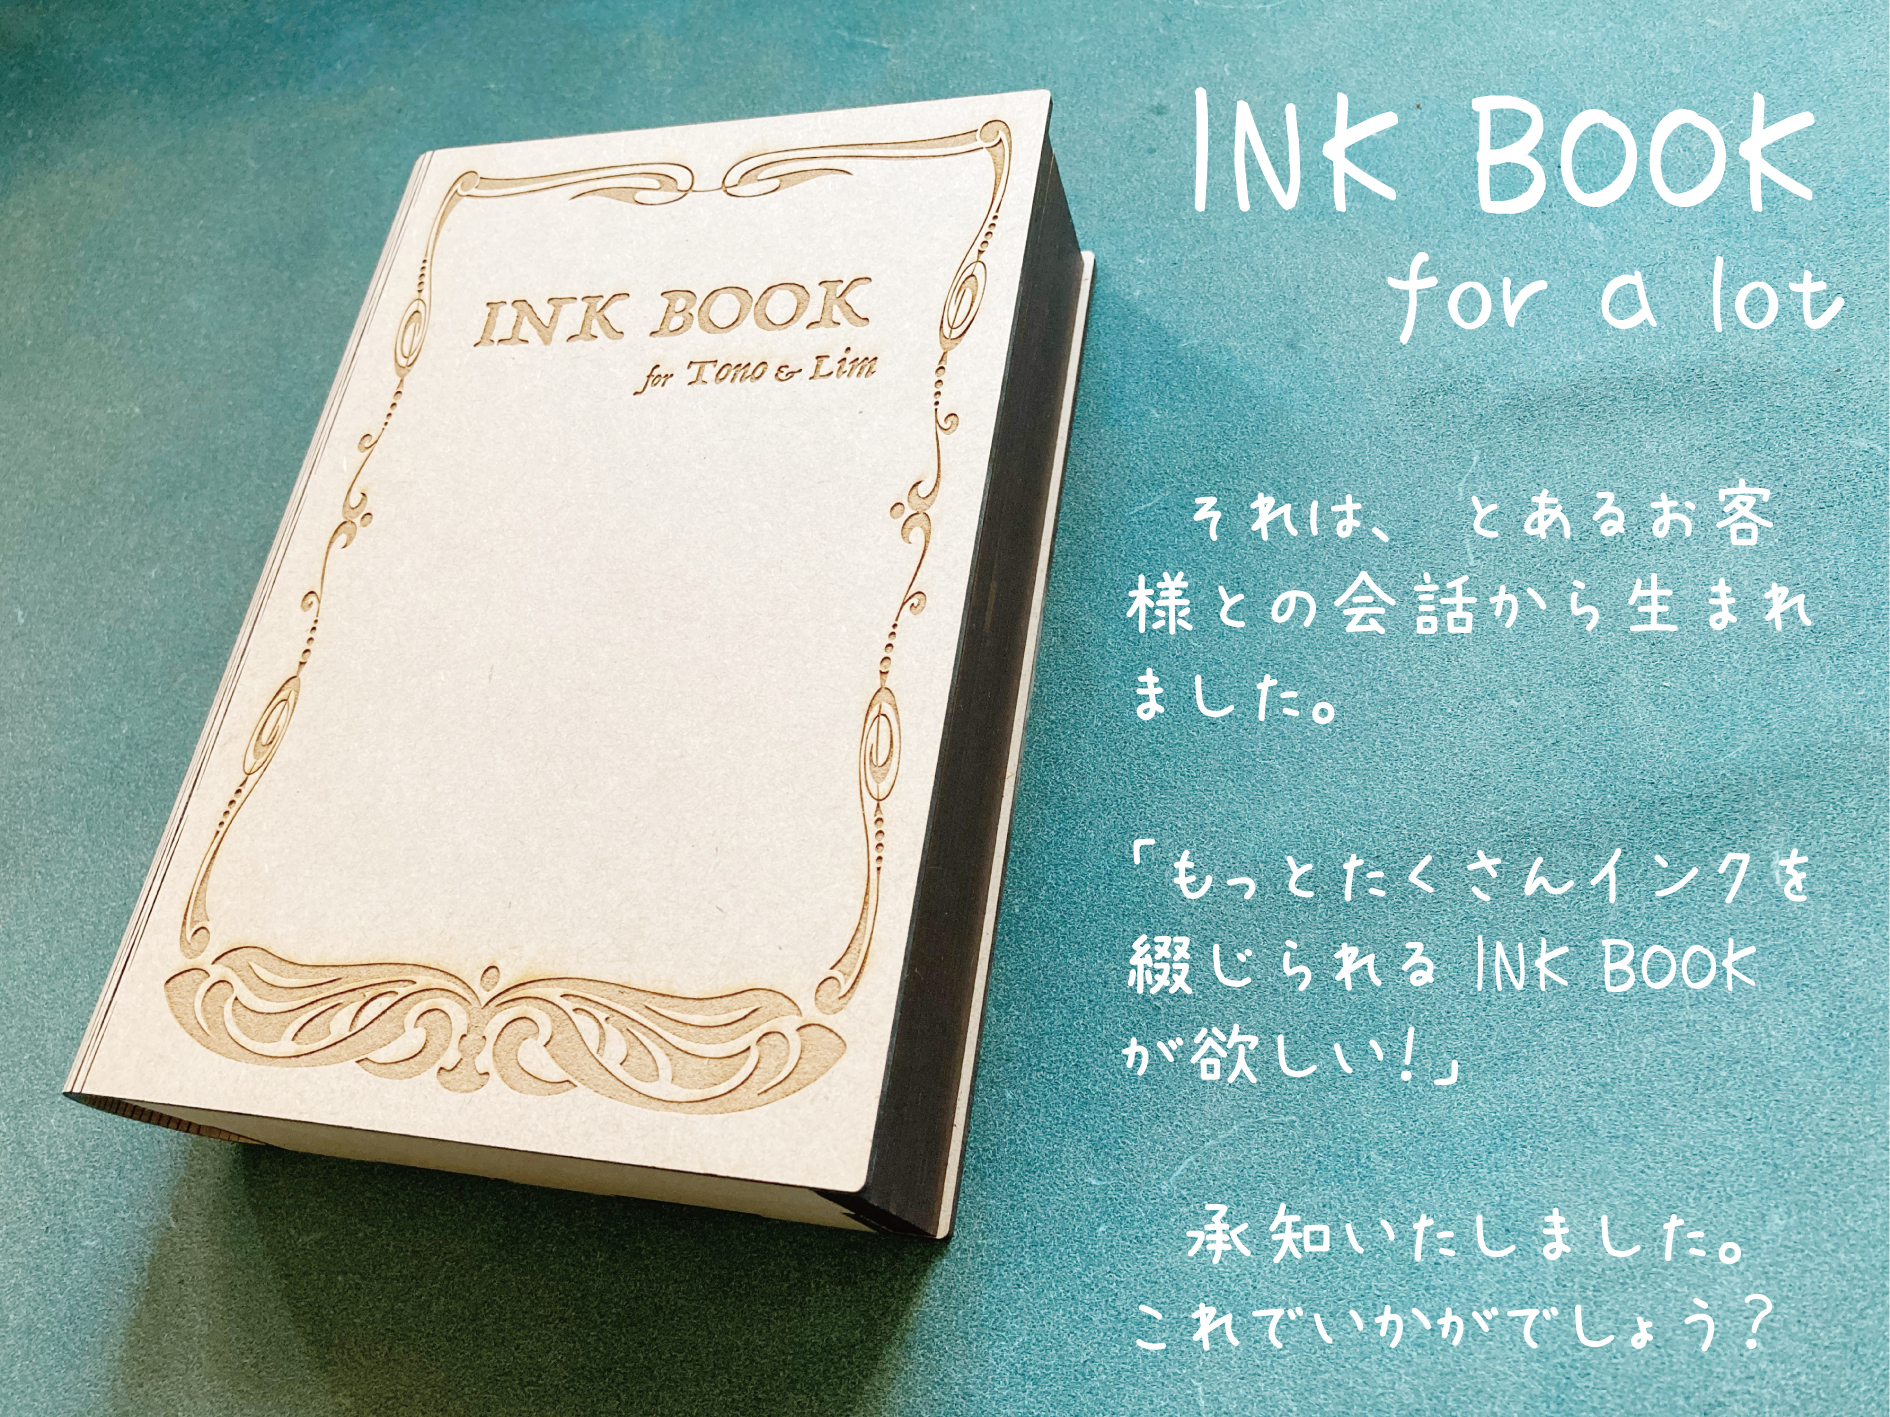 INK BOOK for a lot